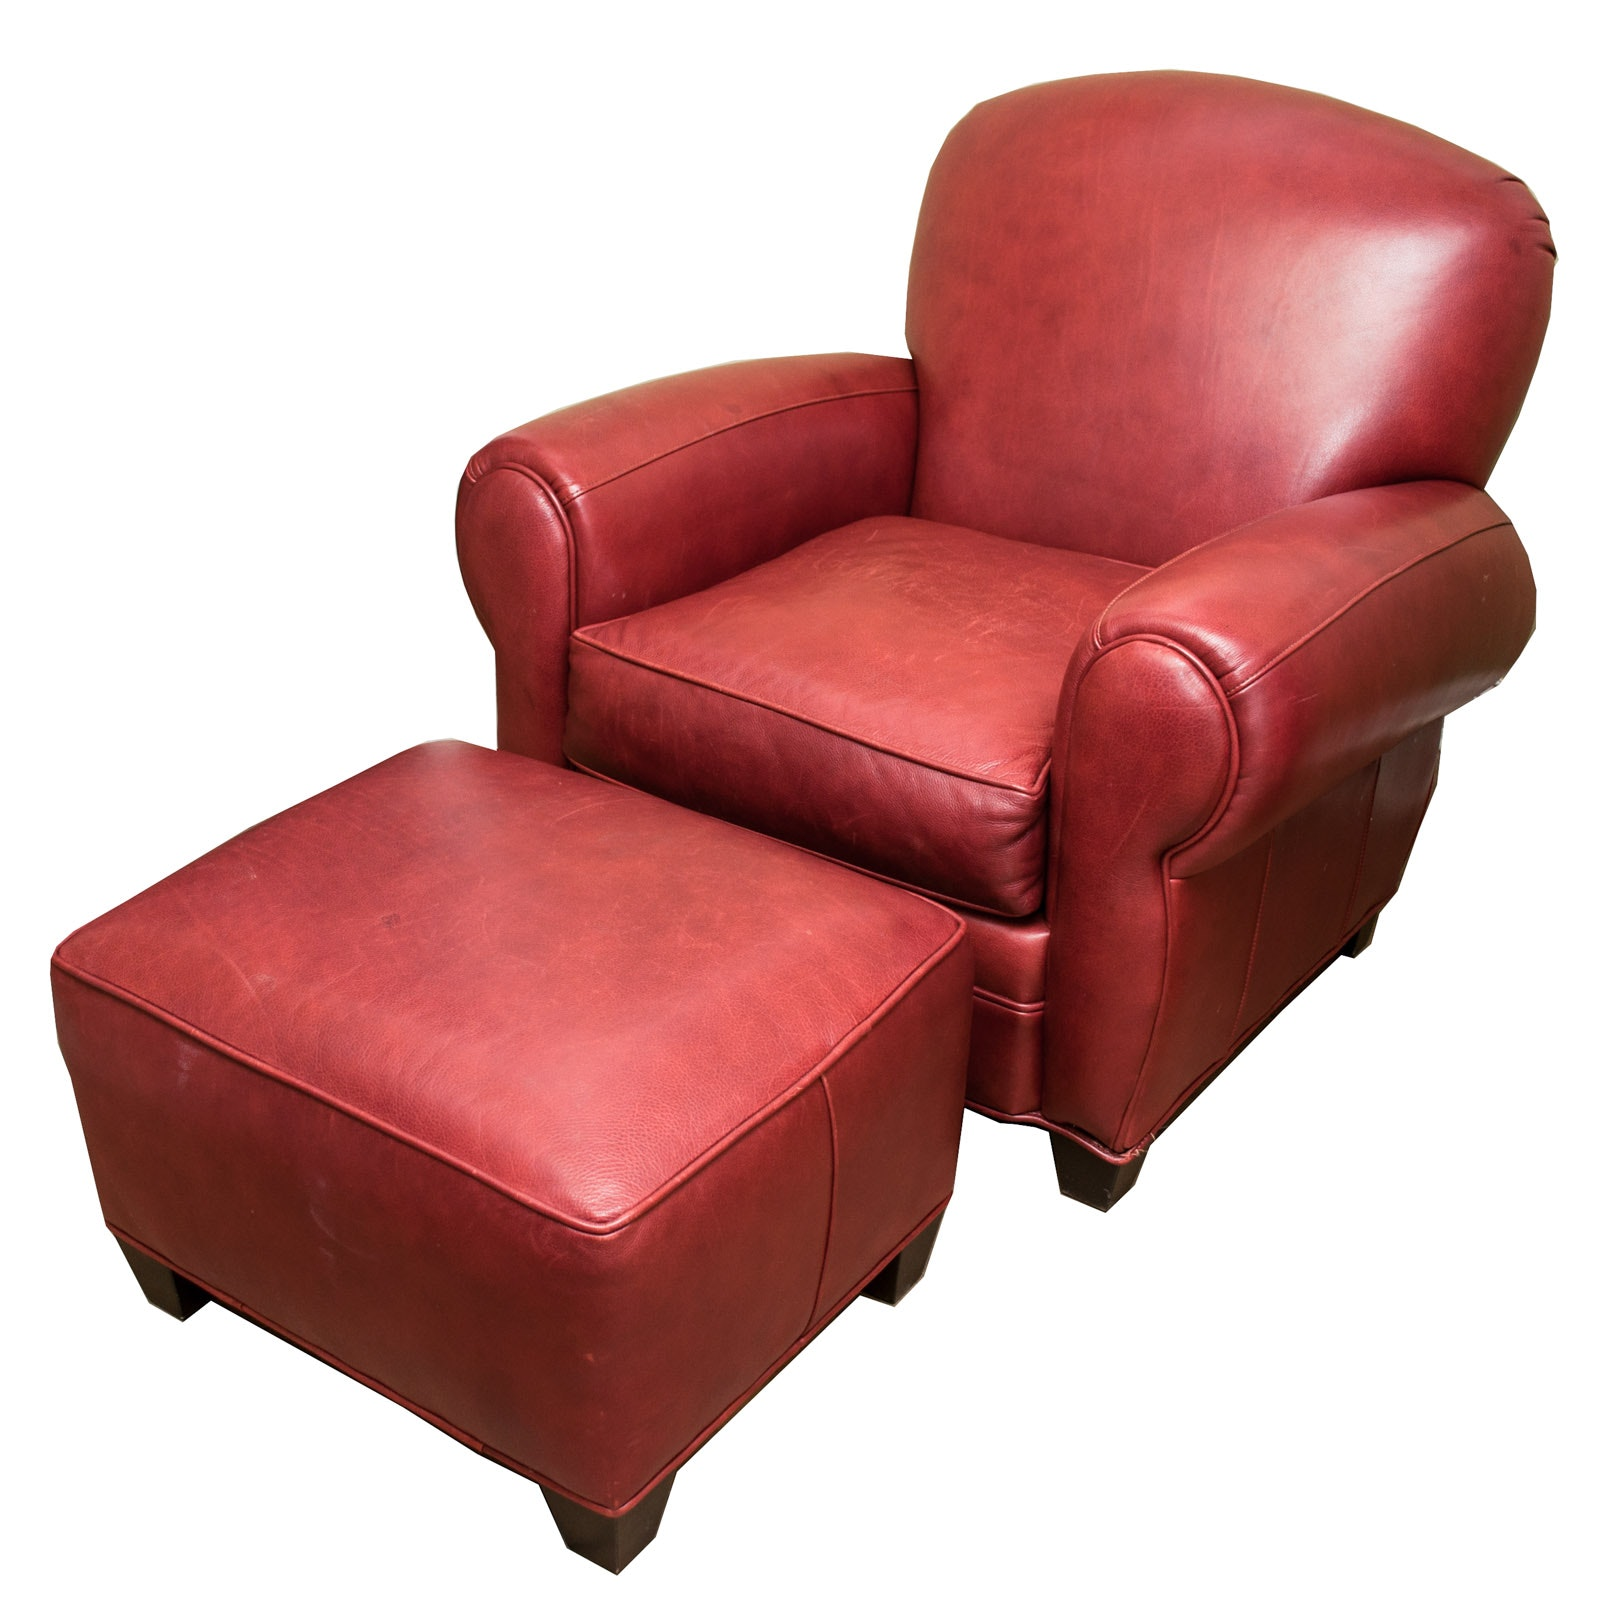 Red Leather Chair U0026 Ottoman By Arhaus Furniture ...